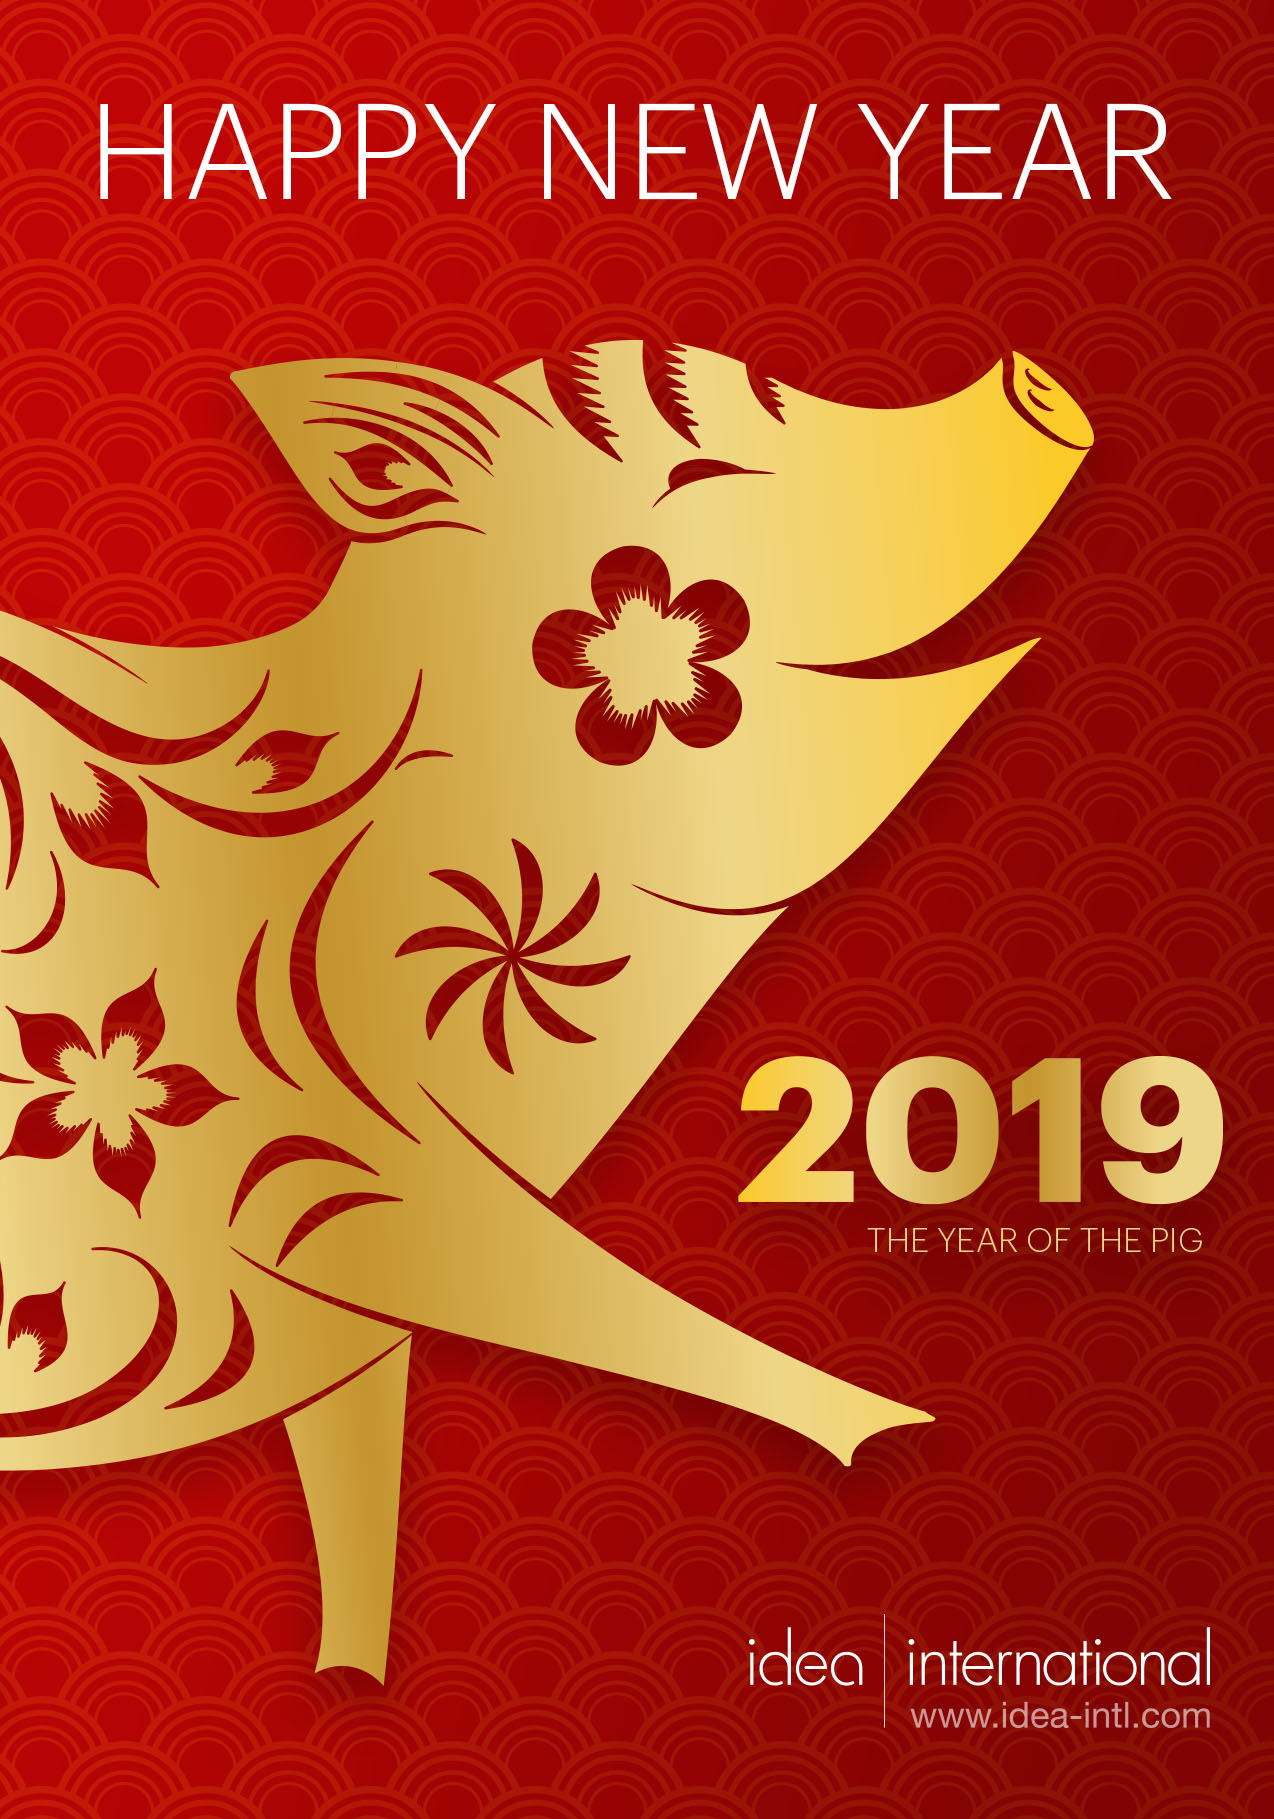 2019 is the Year of the Pig - Idea International Newsletter